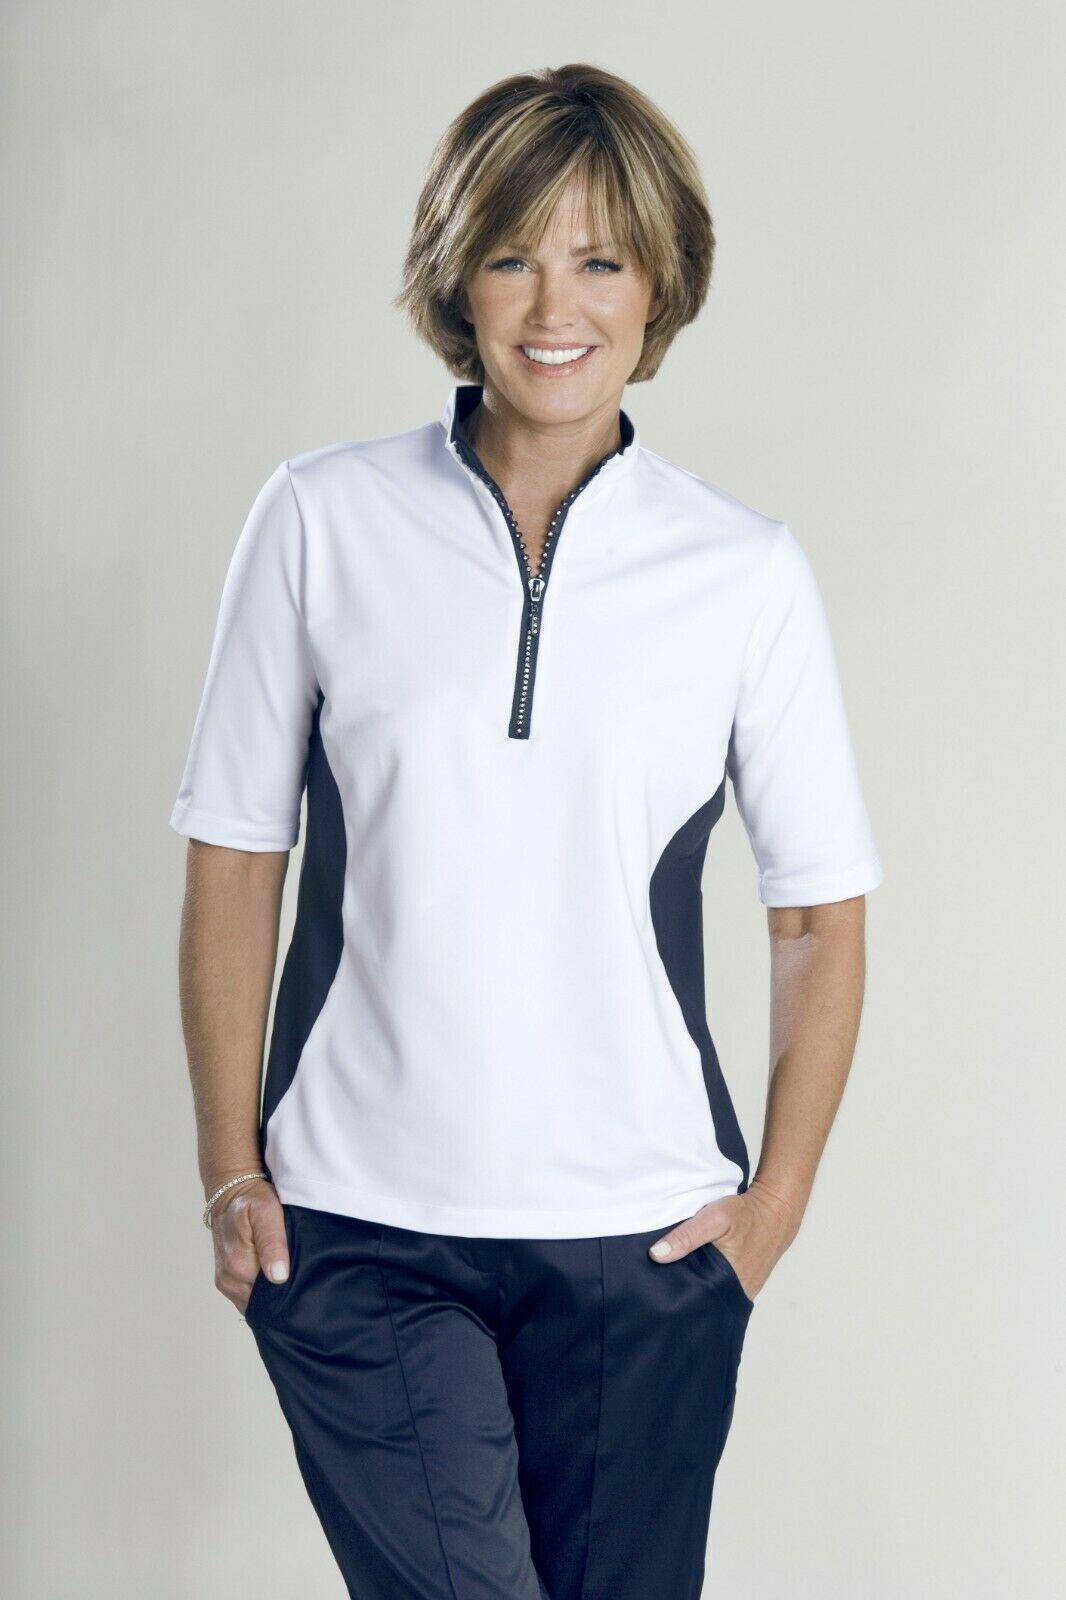 Stylish Women's Golf & Casual White Short Sleeve Collar Top, Swarovski Buttons image 5